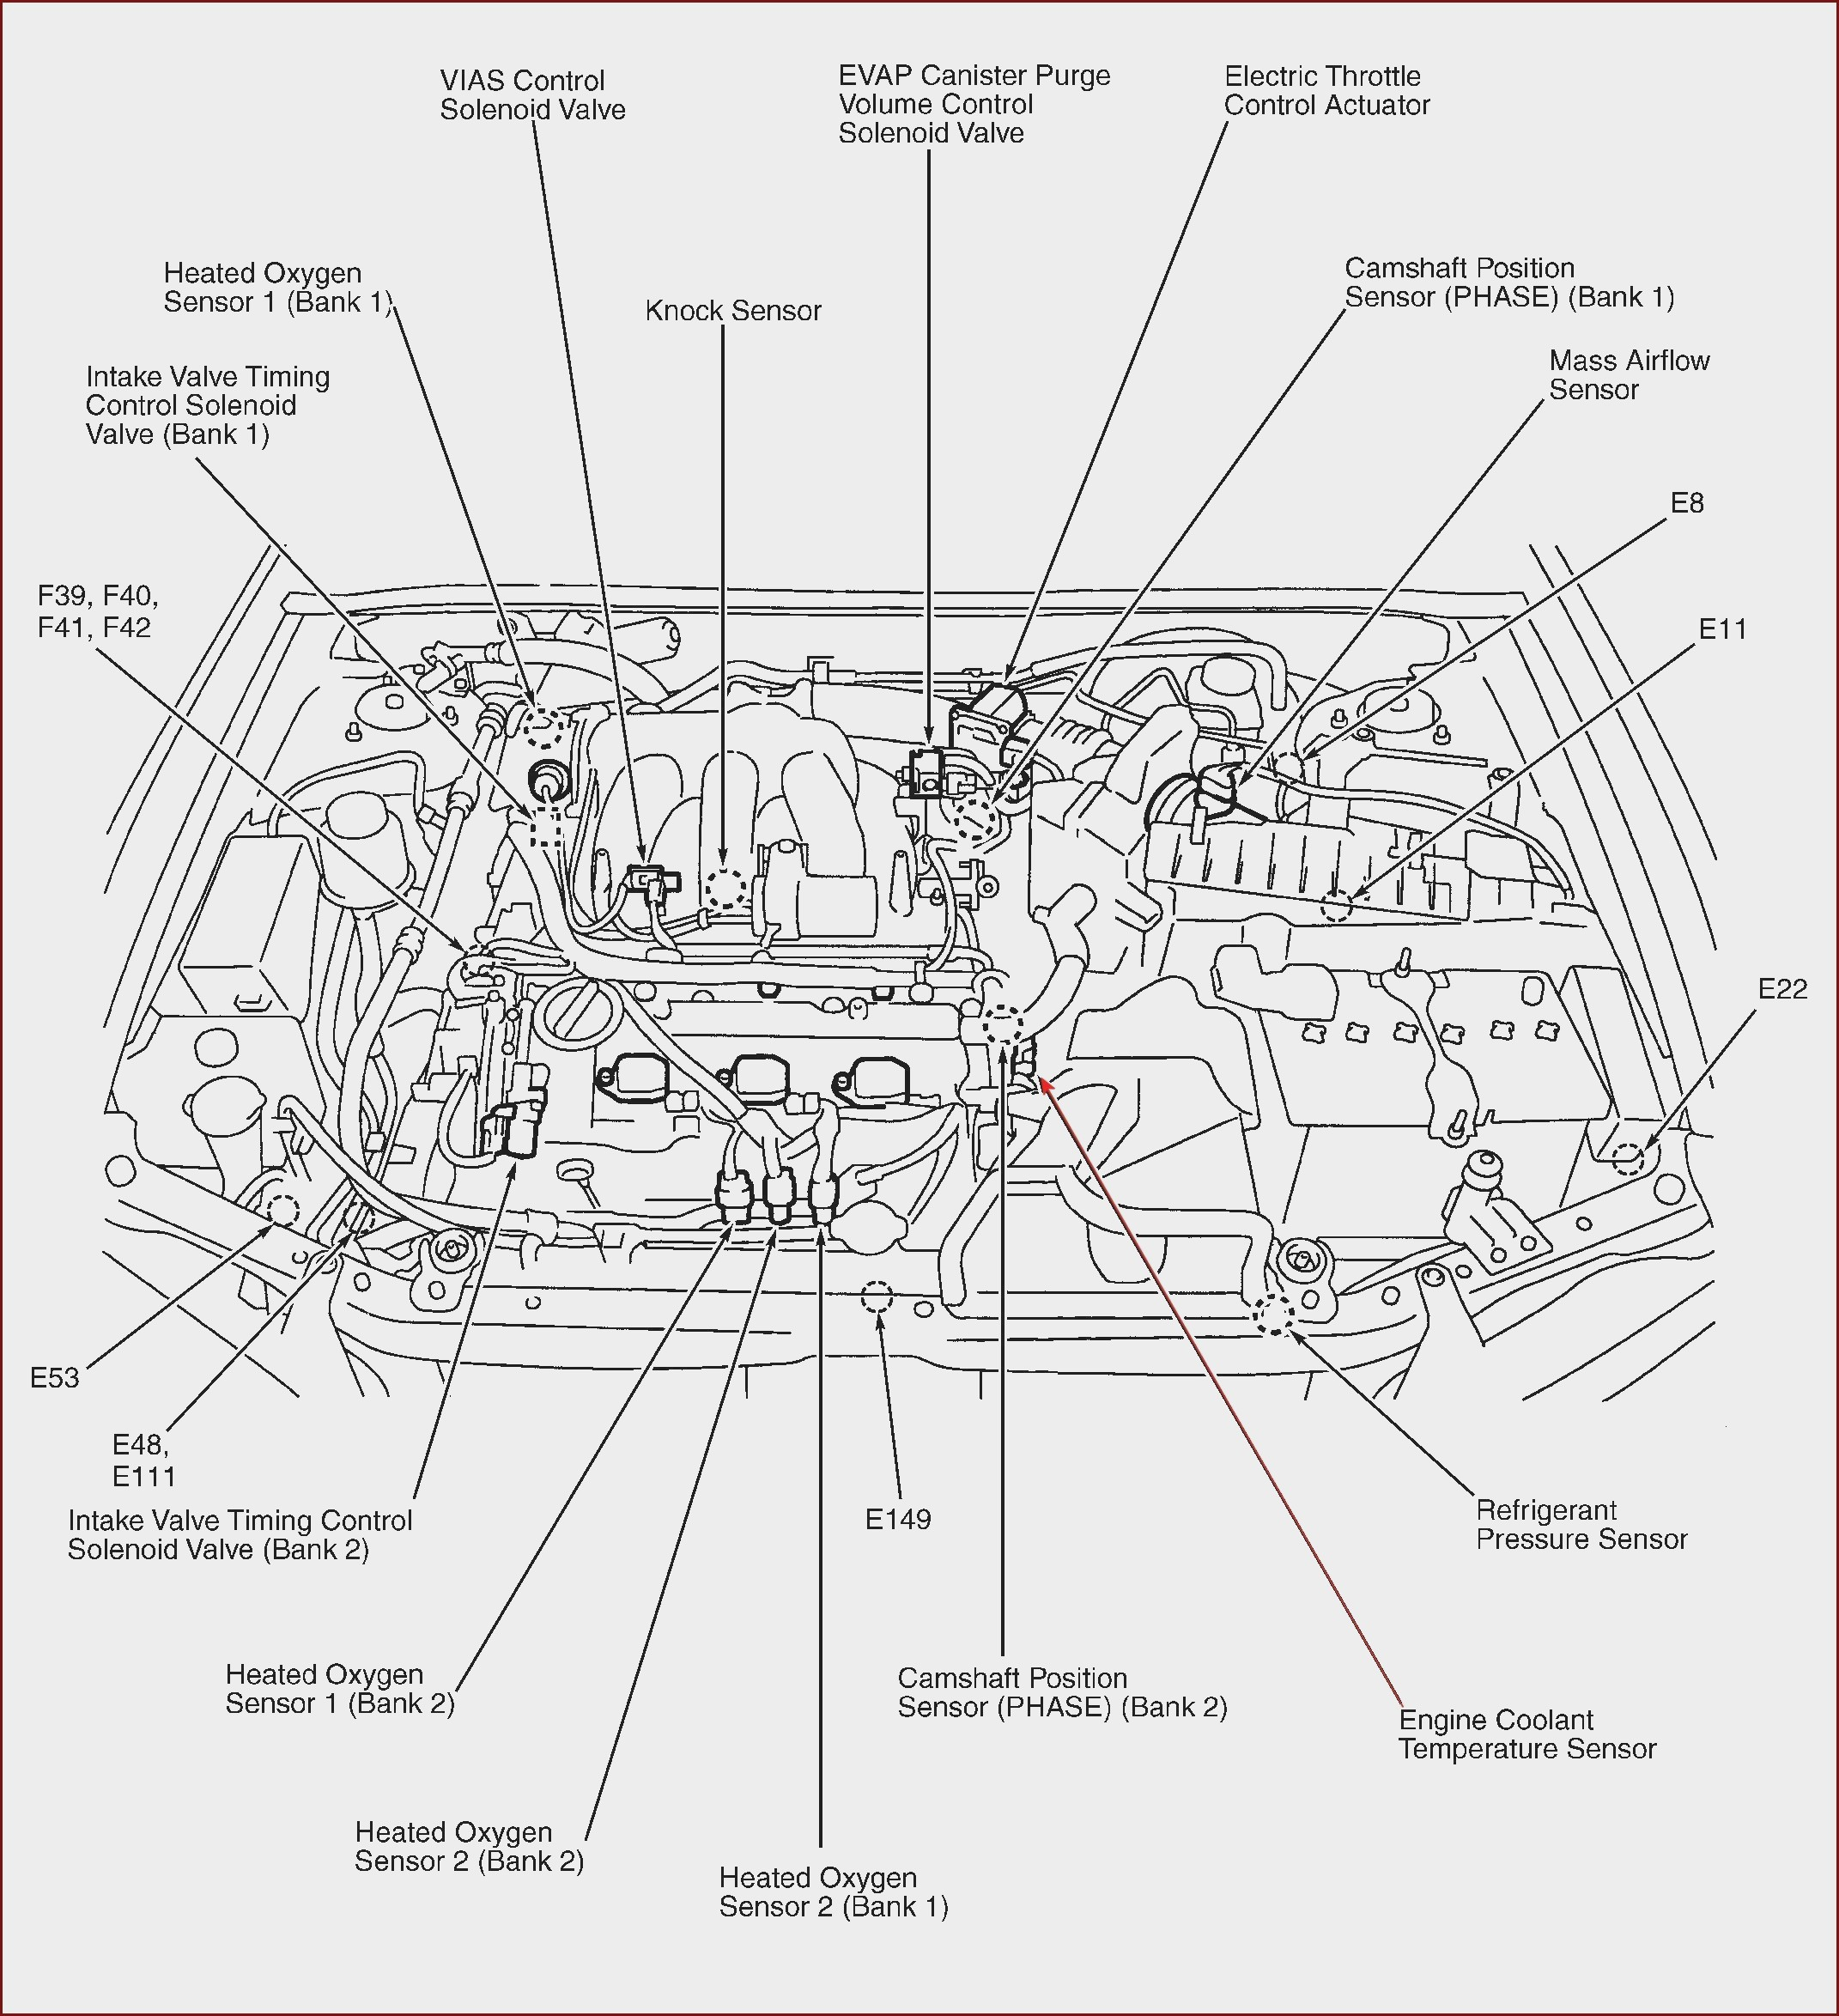 2005 Nissan Xterra Engine Diagram 1995 Nissan Pathfinder Starter Wiring Diagram at Manuals Library Of 2005 Nissan Xterra Engine Diagram 1998 Nissan Frontier Wiring Diagram